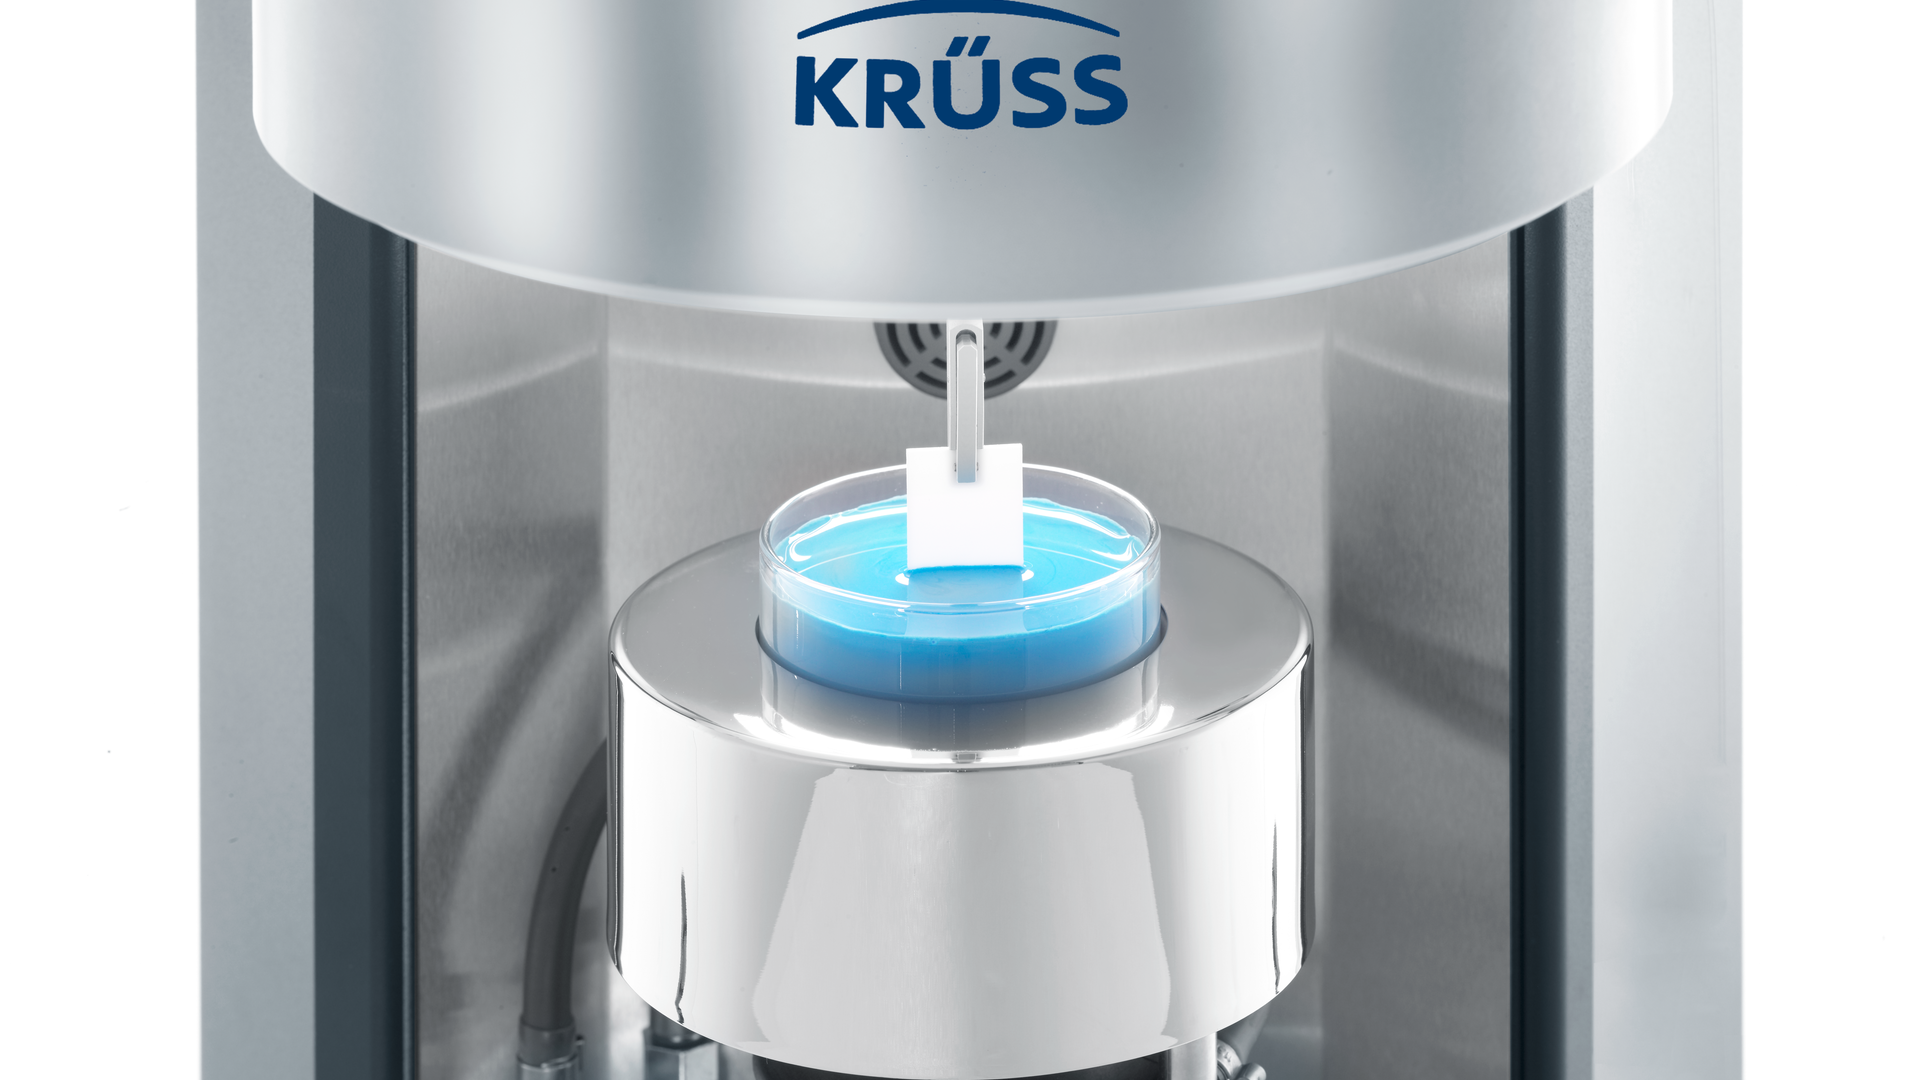 Force Tensiometer – K100 for analyzing surfactants and solid surfaces